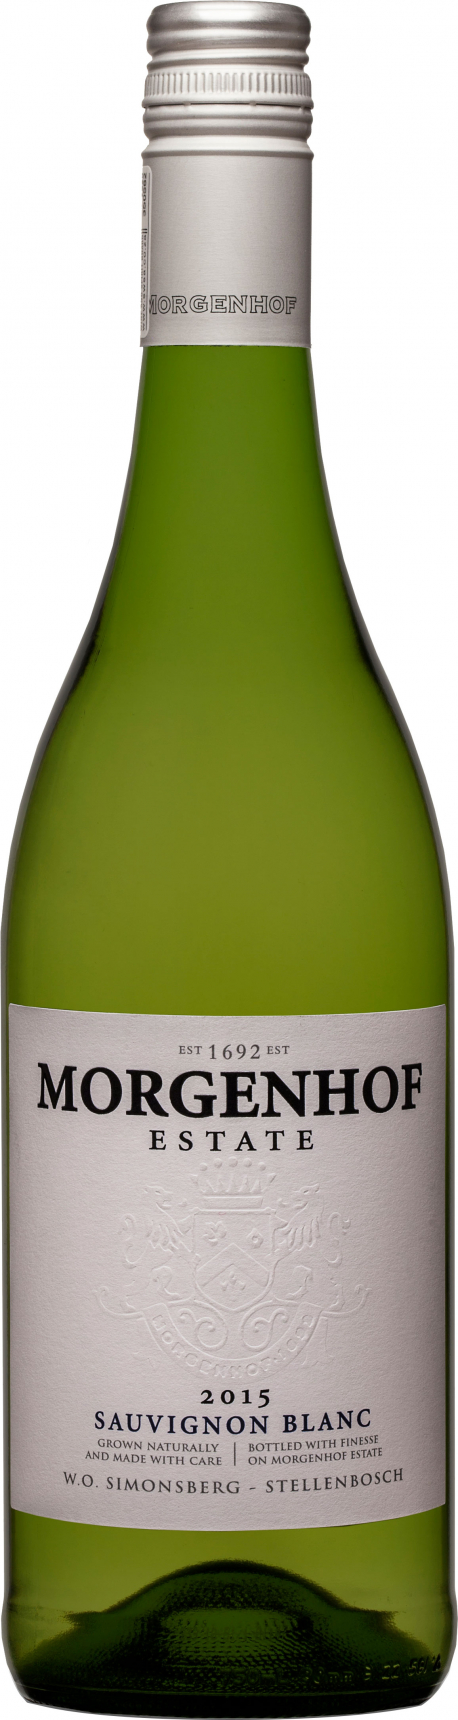 Morgenhof - Sauvignon Blanc 2017 (75cl Bottle)